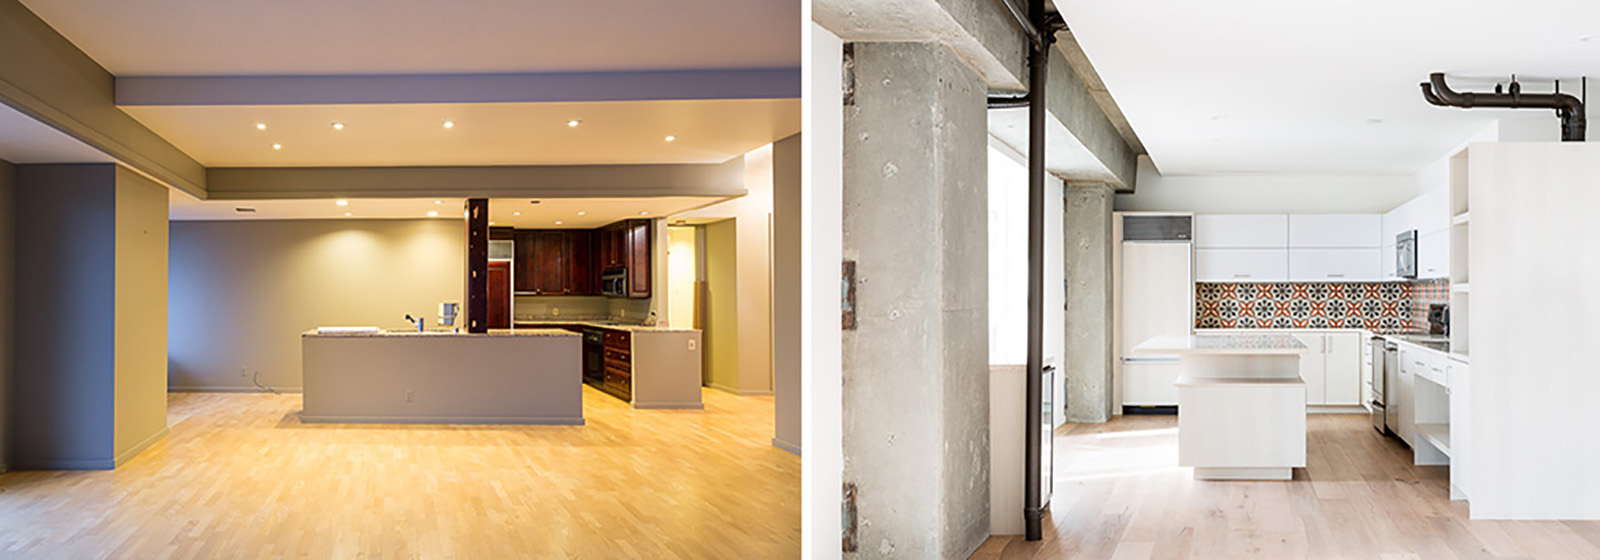 enlarged kitchen before and after.jpg